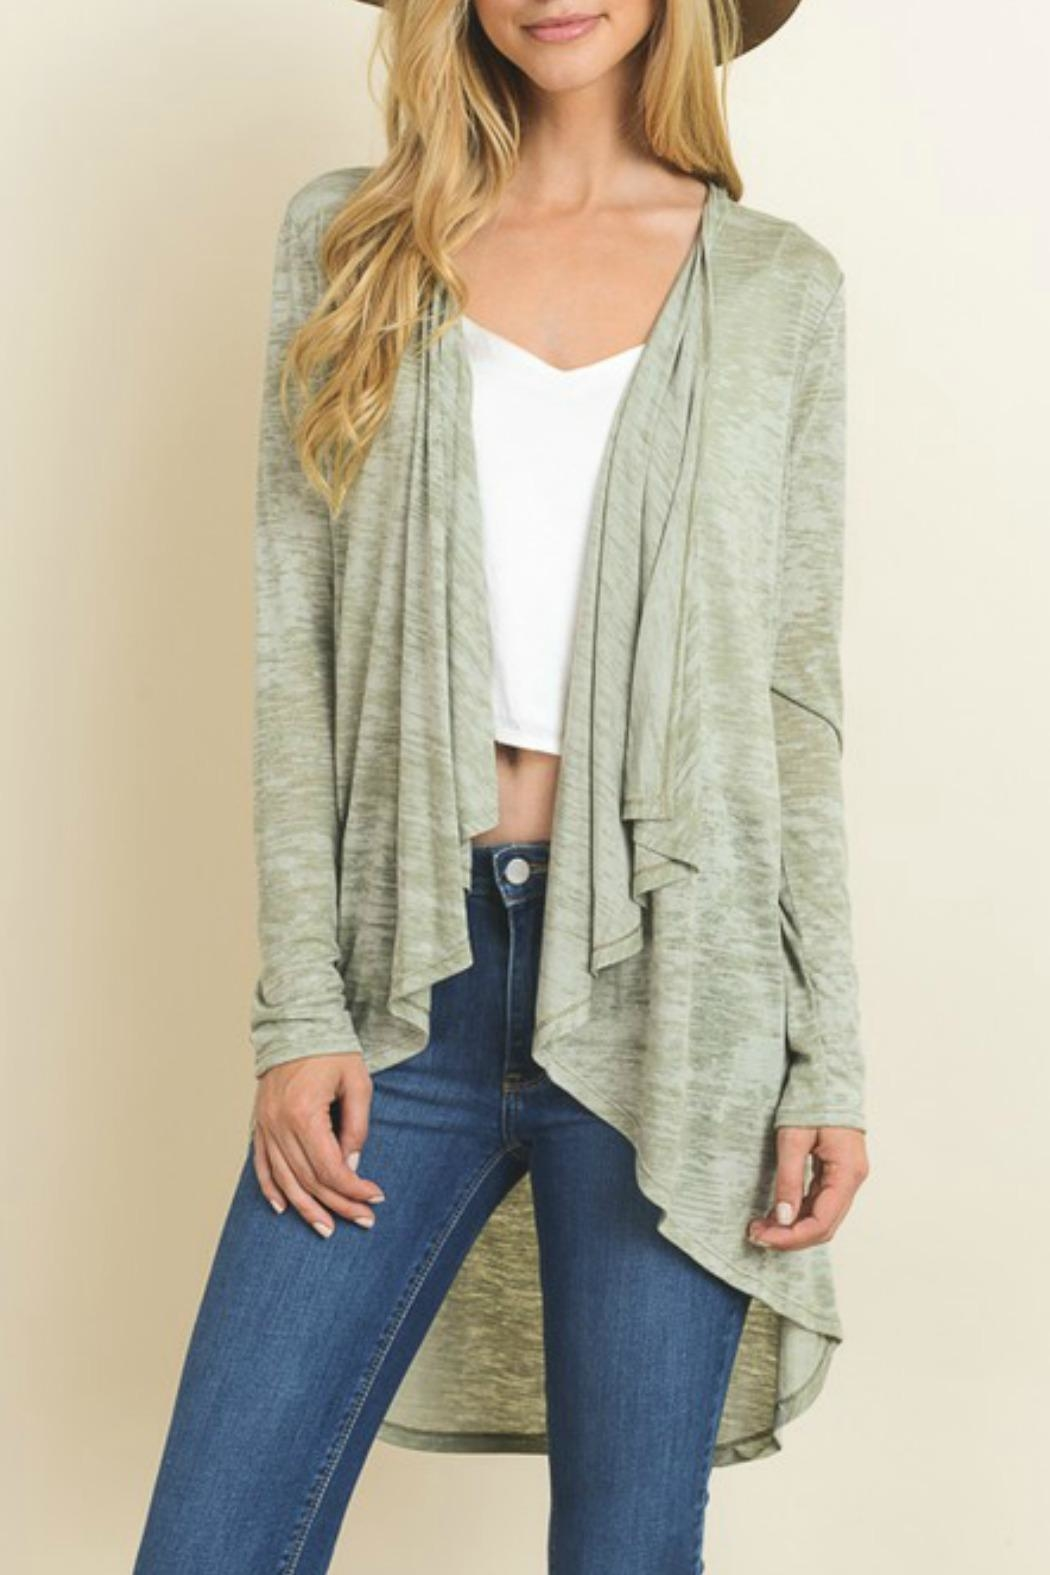 Le Lis Olive Green Cardigan - Main Image